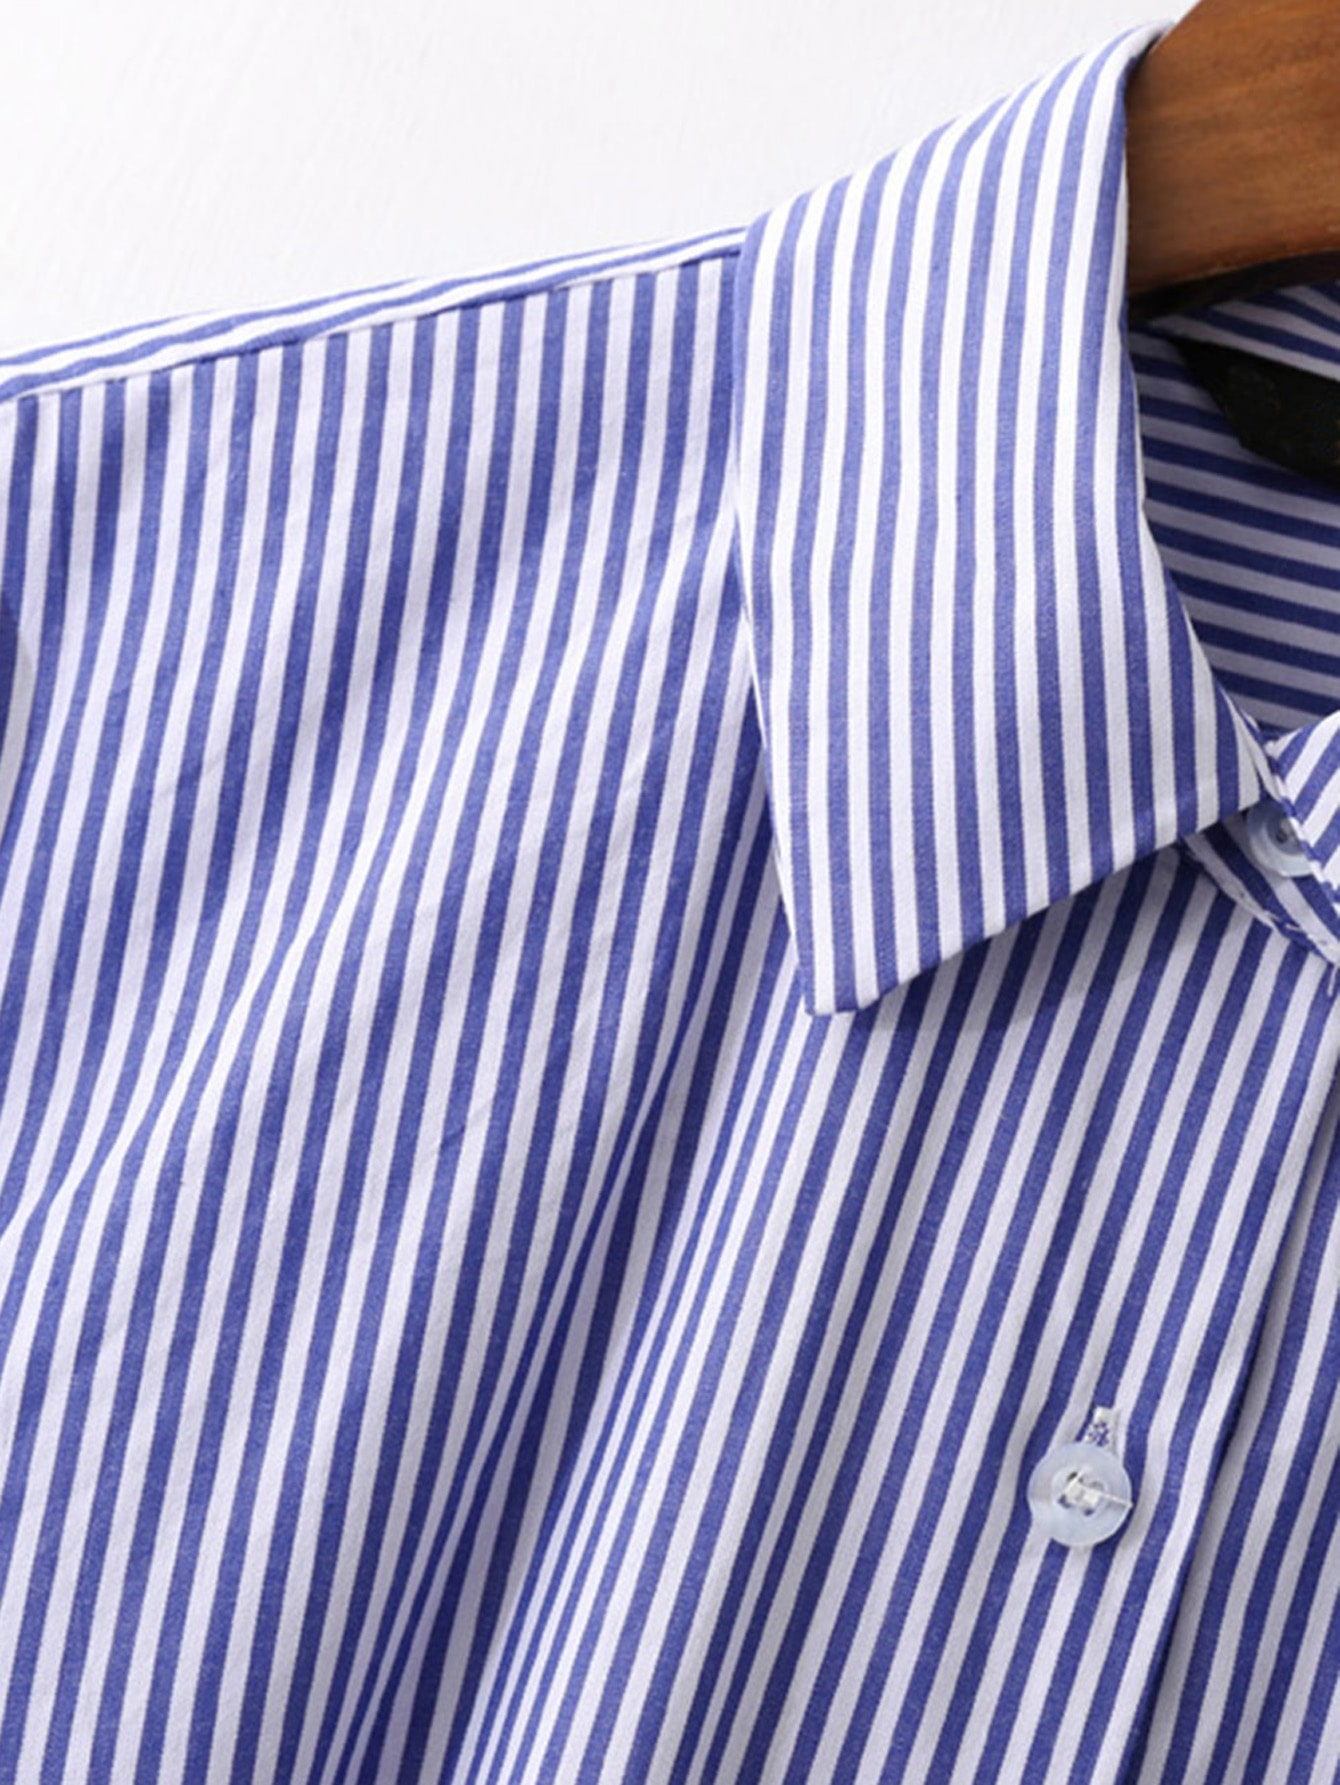 What Tie With A Blue And White Striped Shirt Kamos T Shirt